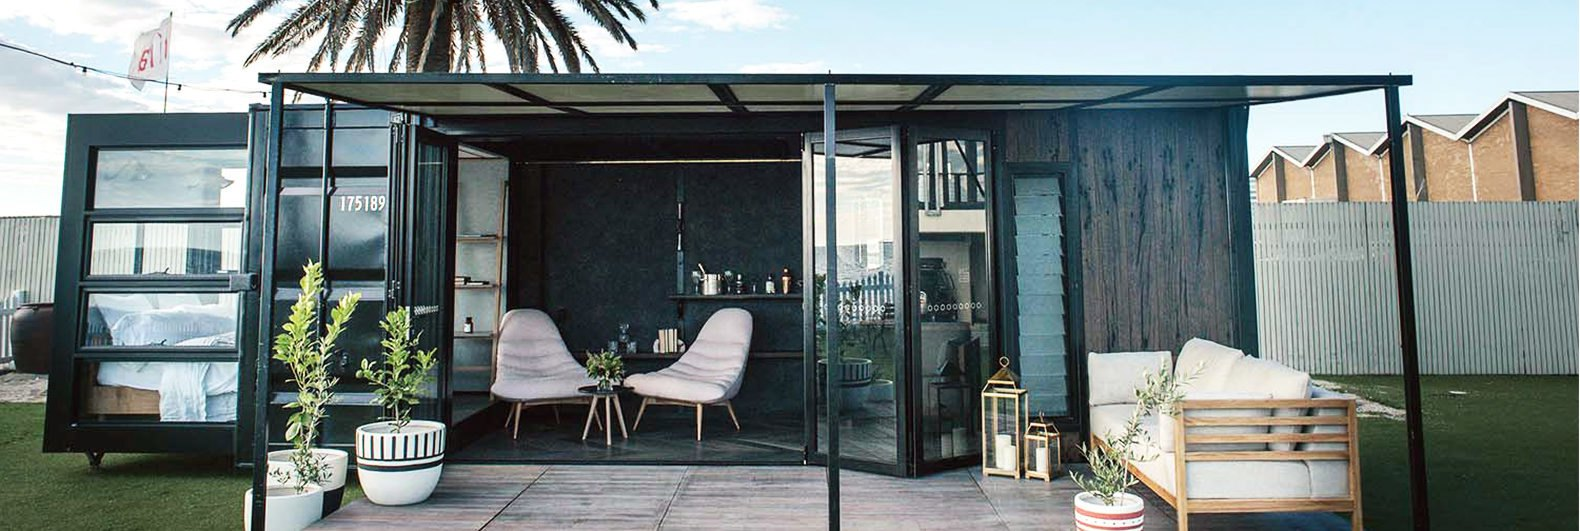 Best Kitchen Gallery: This Shipping Container Hotel Is So Cool You'll Forget Its A of Shipping Container Homes Cool on rachelxblog.com